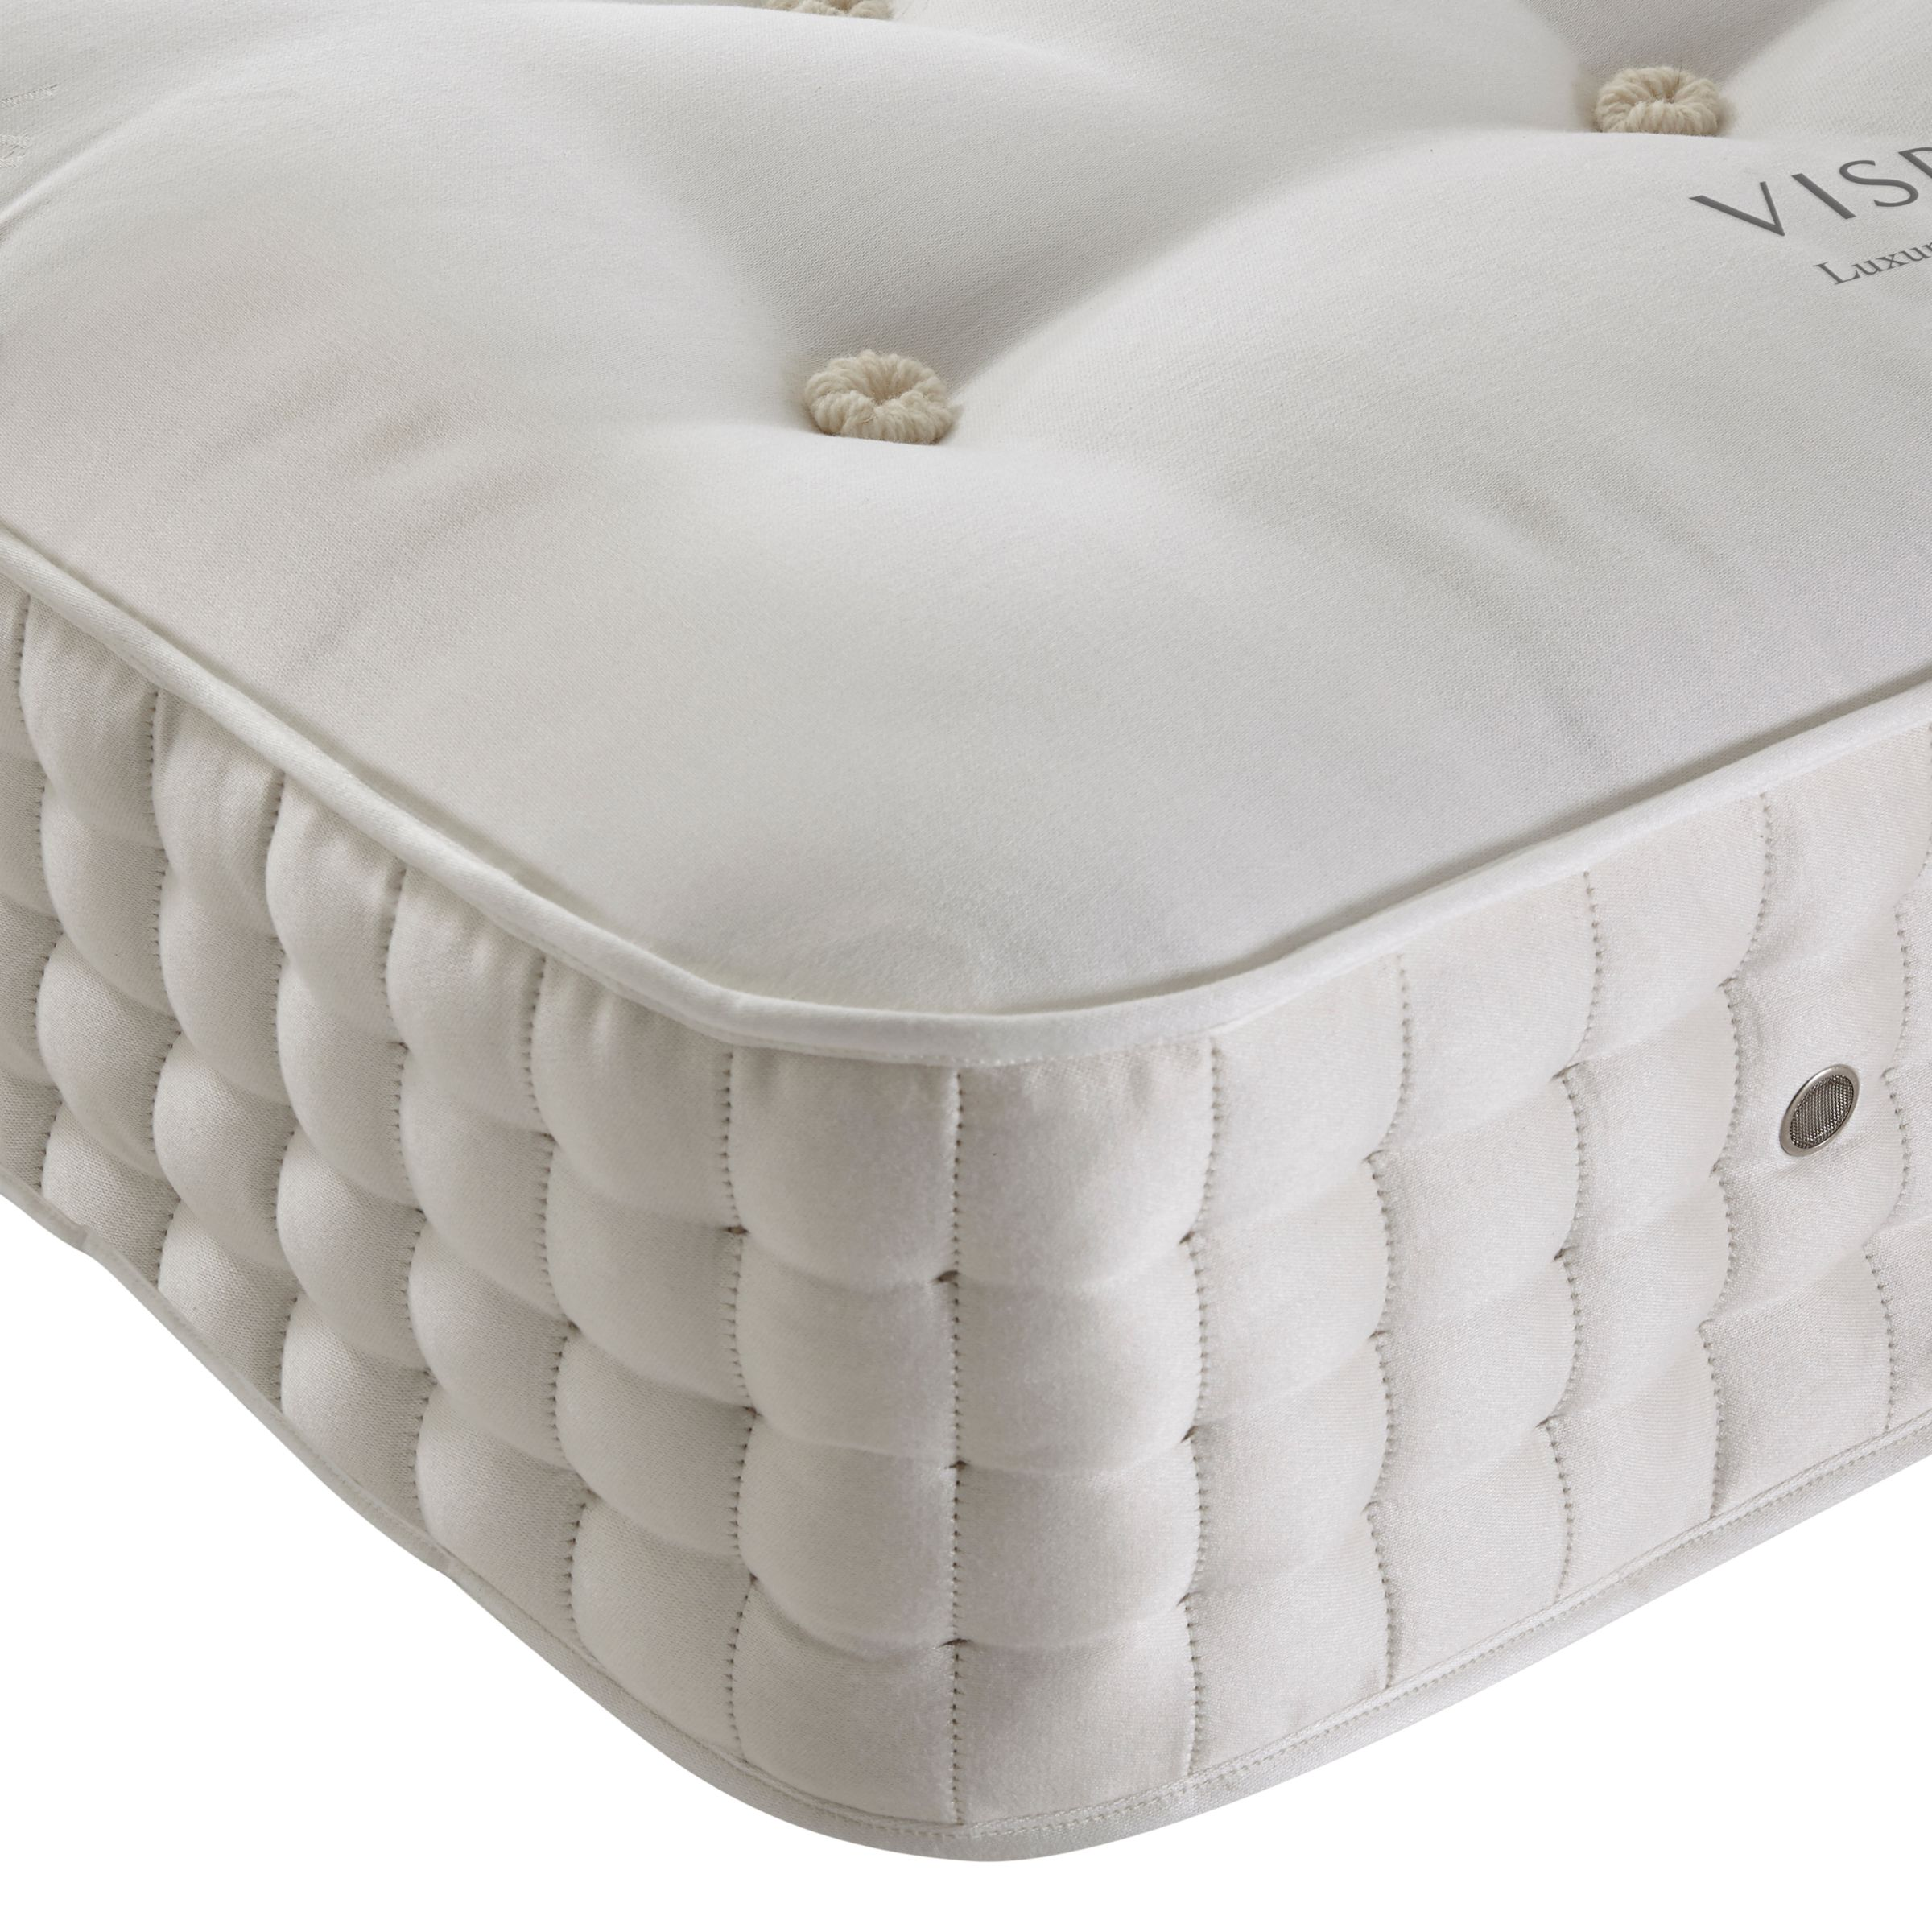 Vi-Spring Stowe Superb Mattress, Emperor